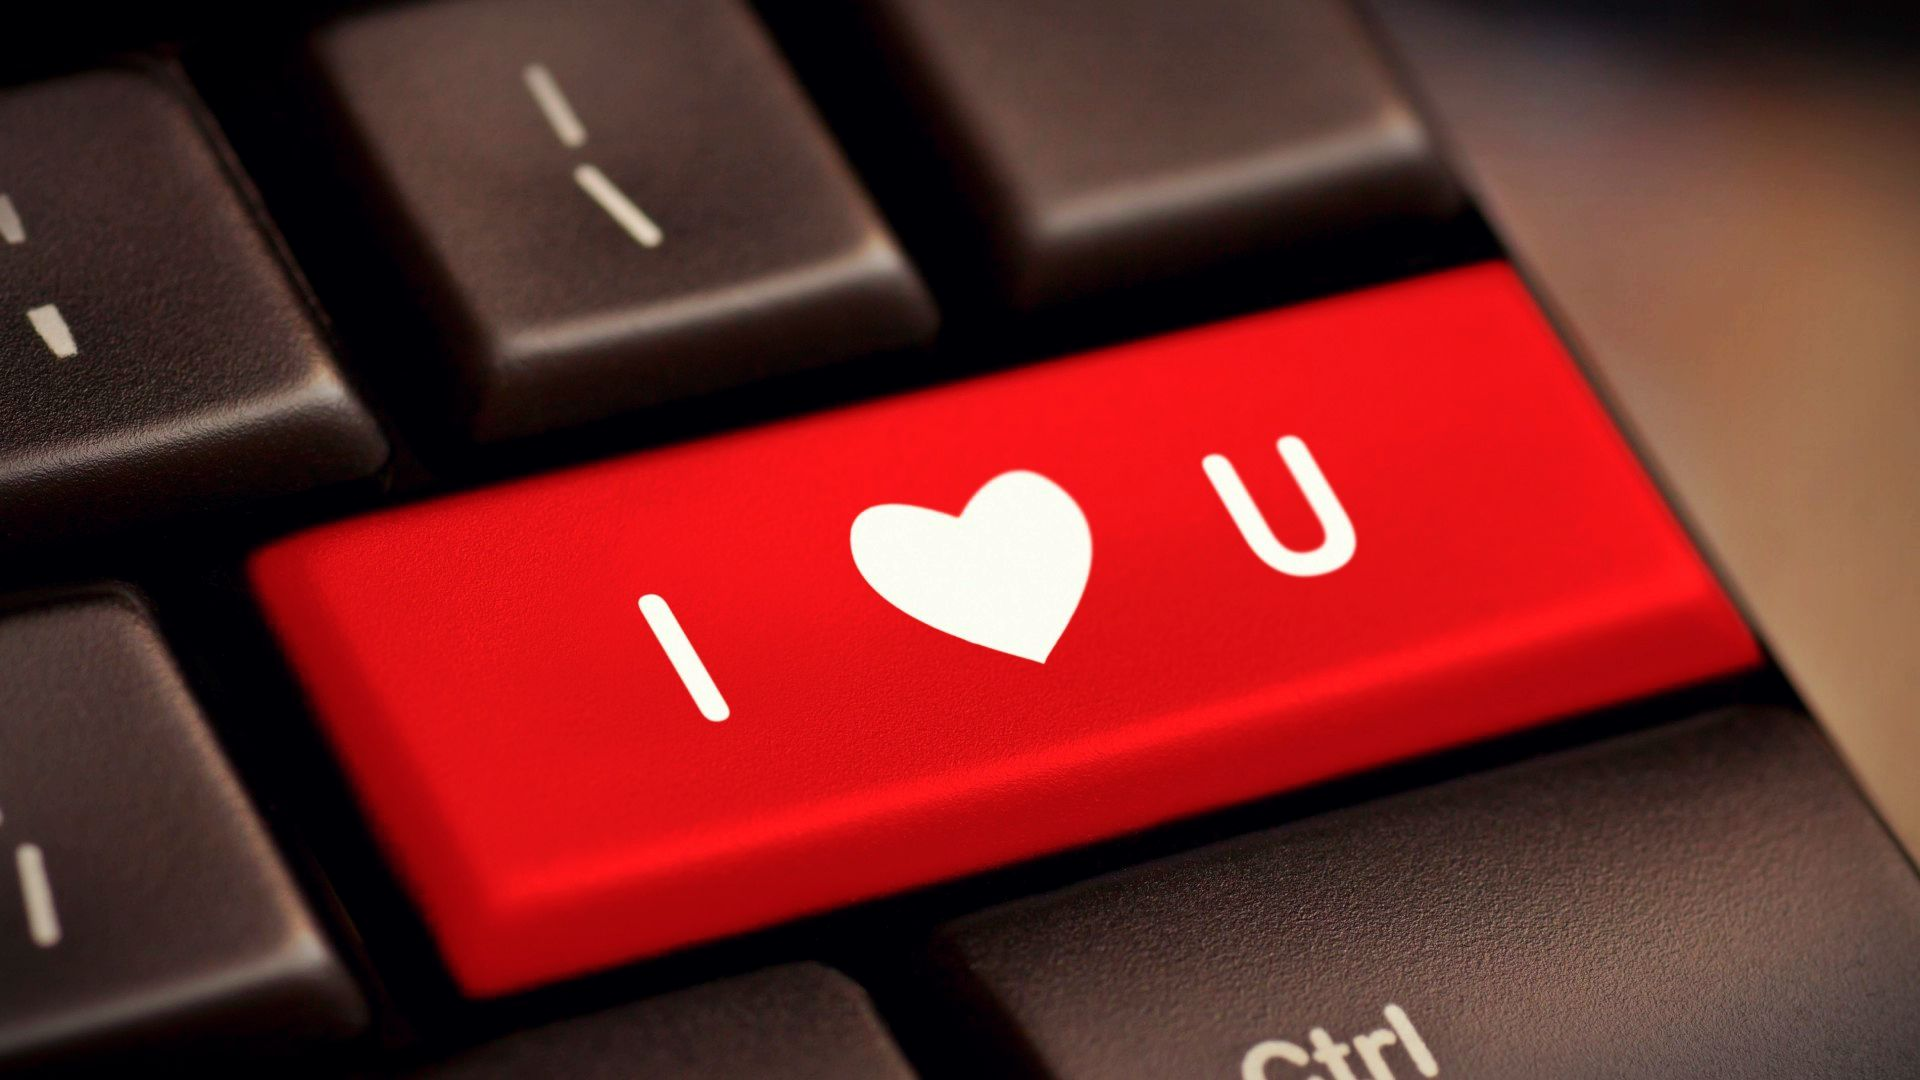 I Love You Wallpapers HD A24